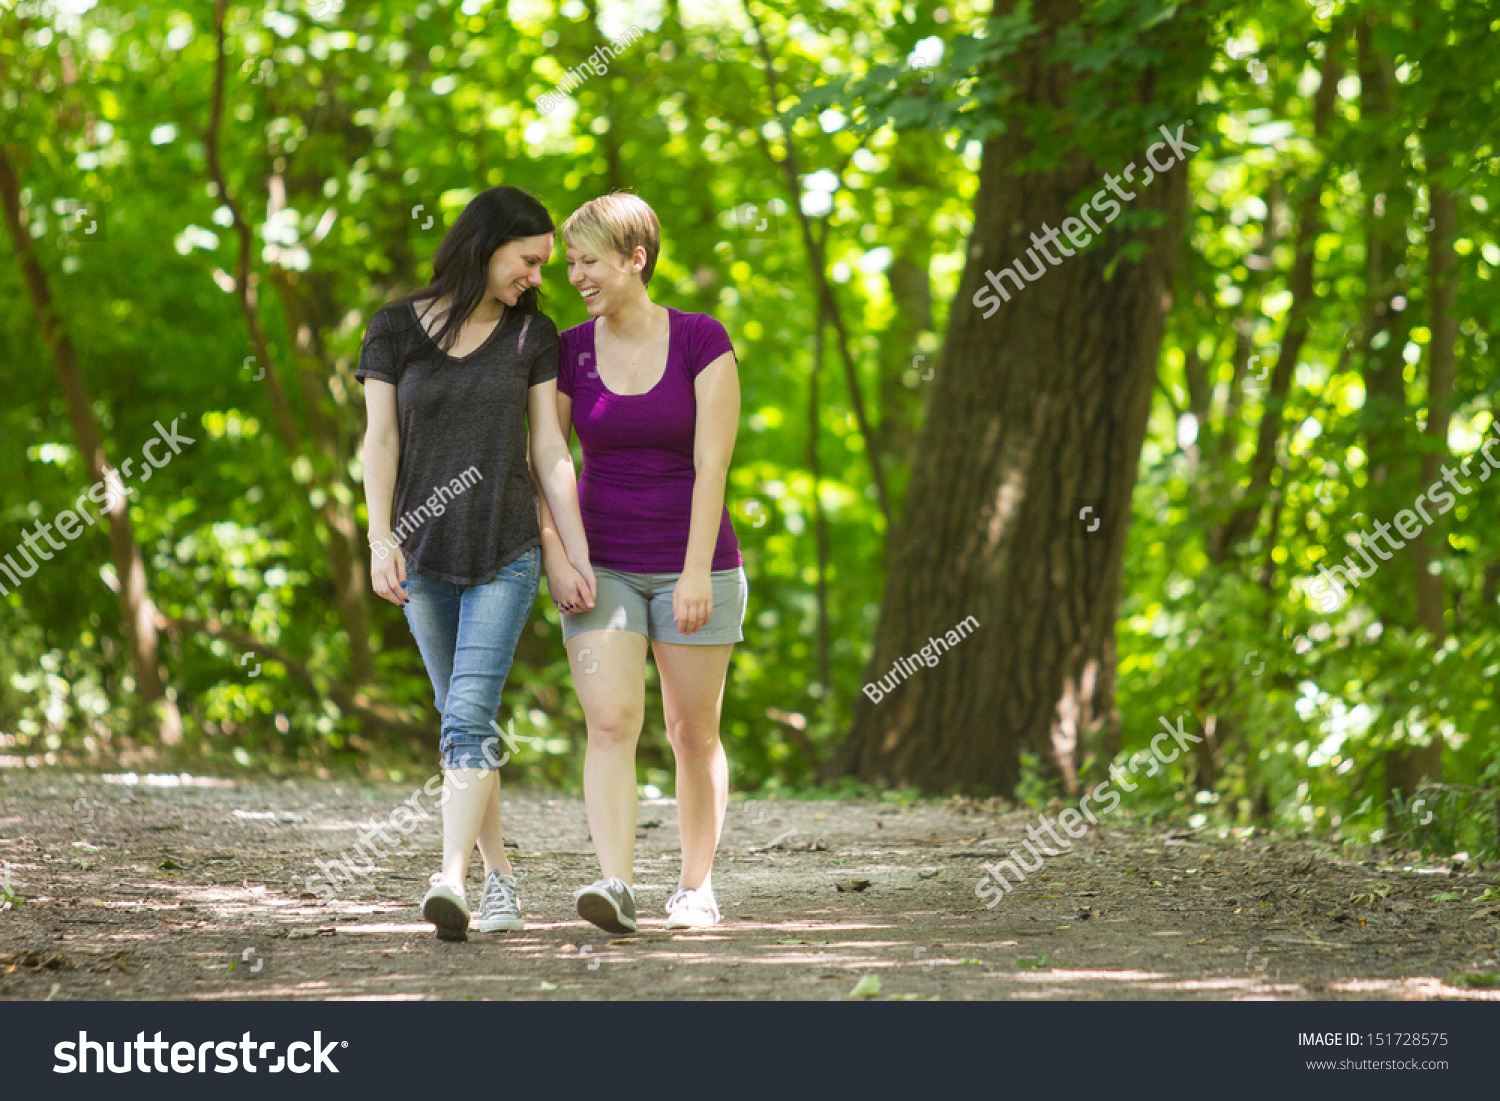 parks lesbian dating site Trusted lesbian dating site for senior singles using 29 dimensions of compatibility, we connect single senior lesbians searching for true love join free.